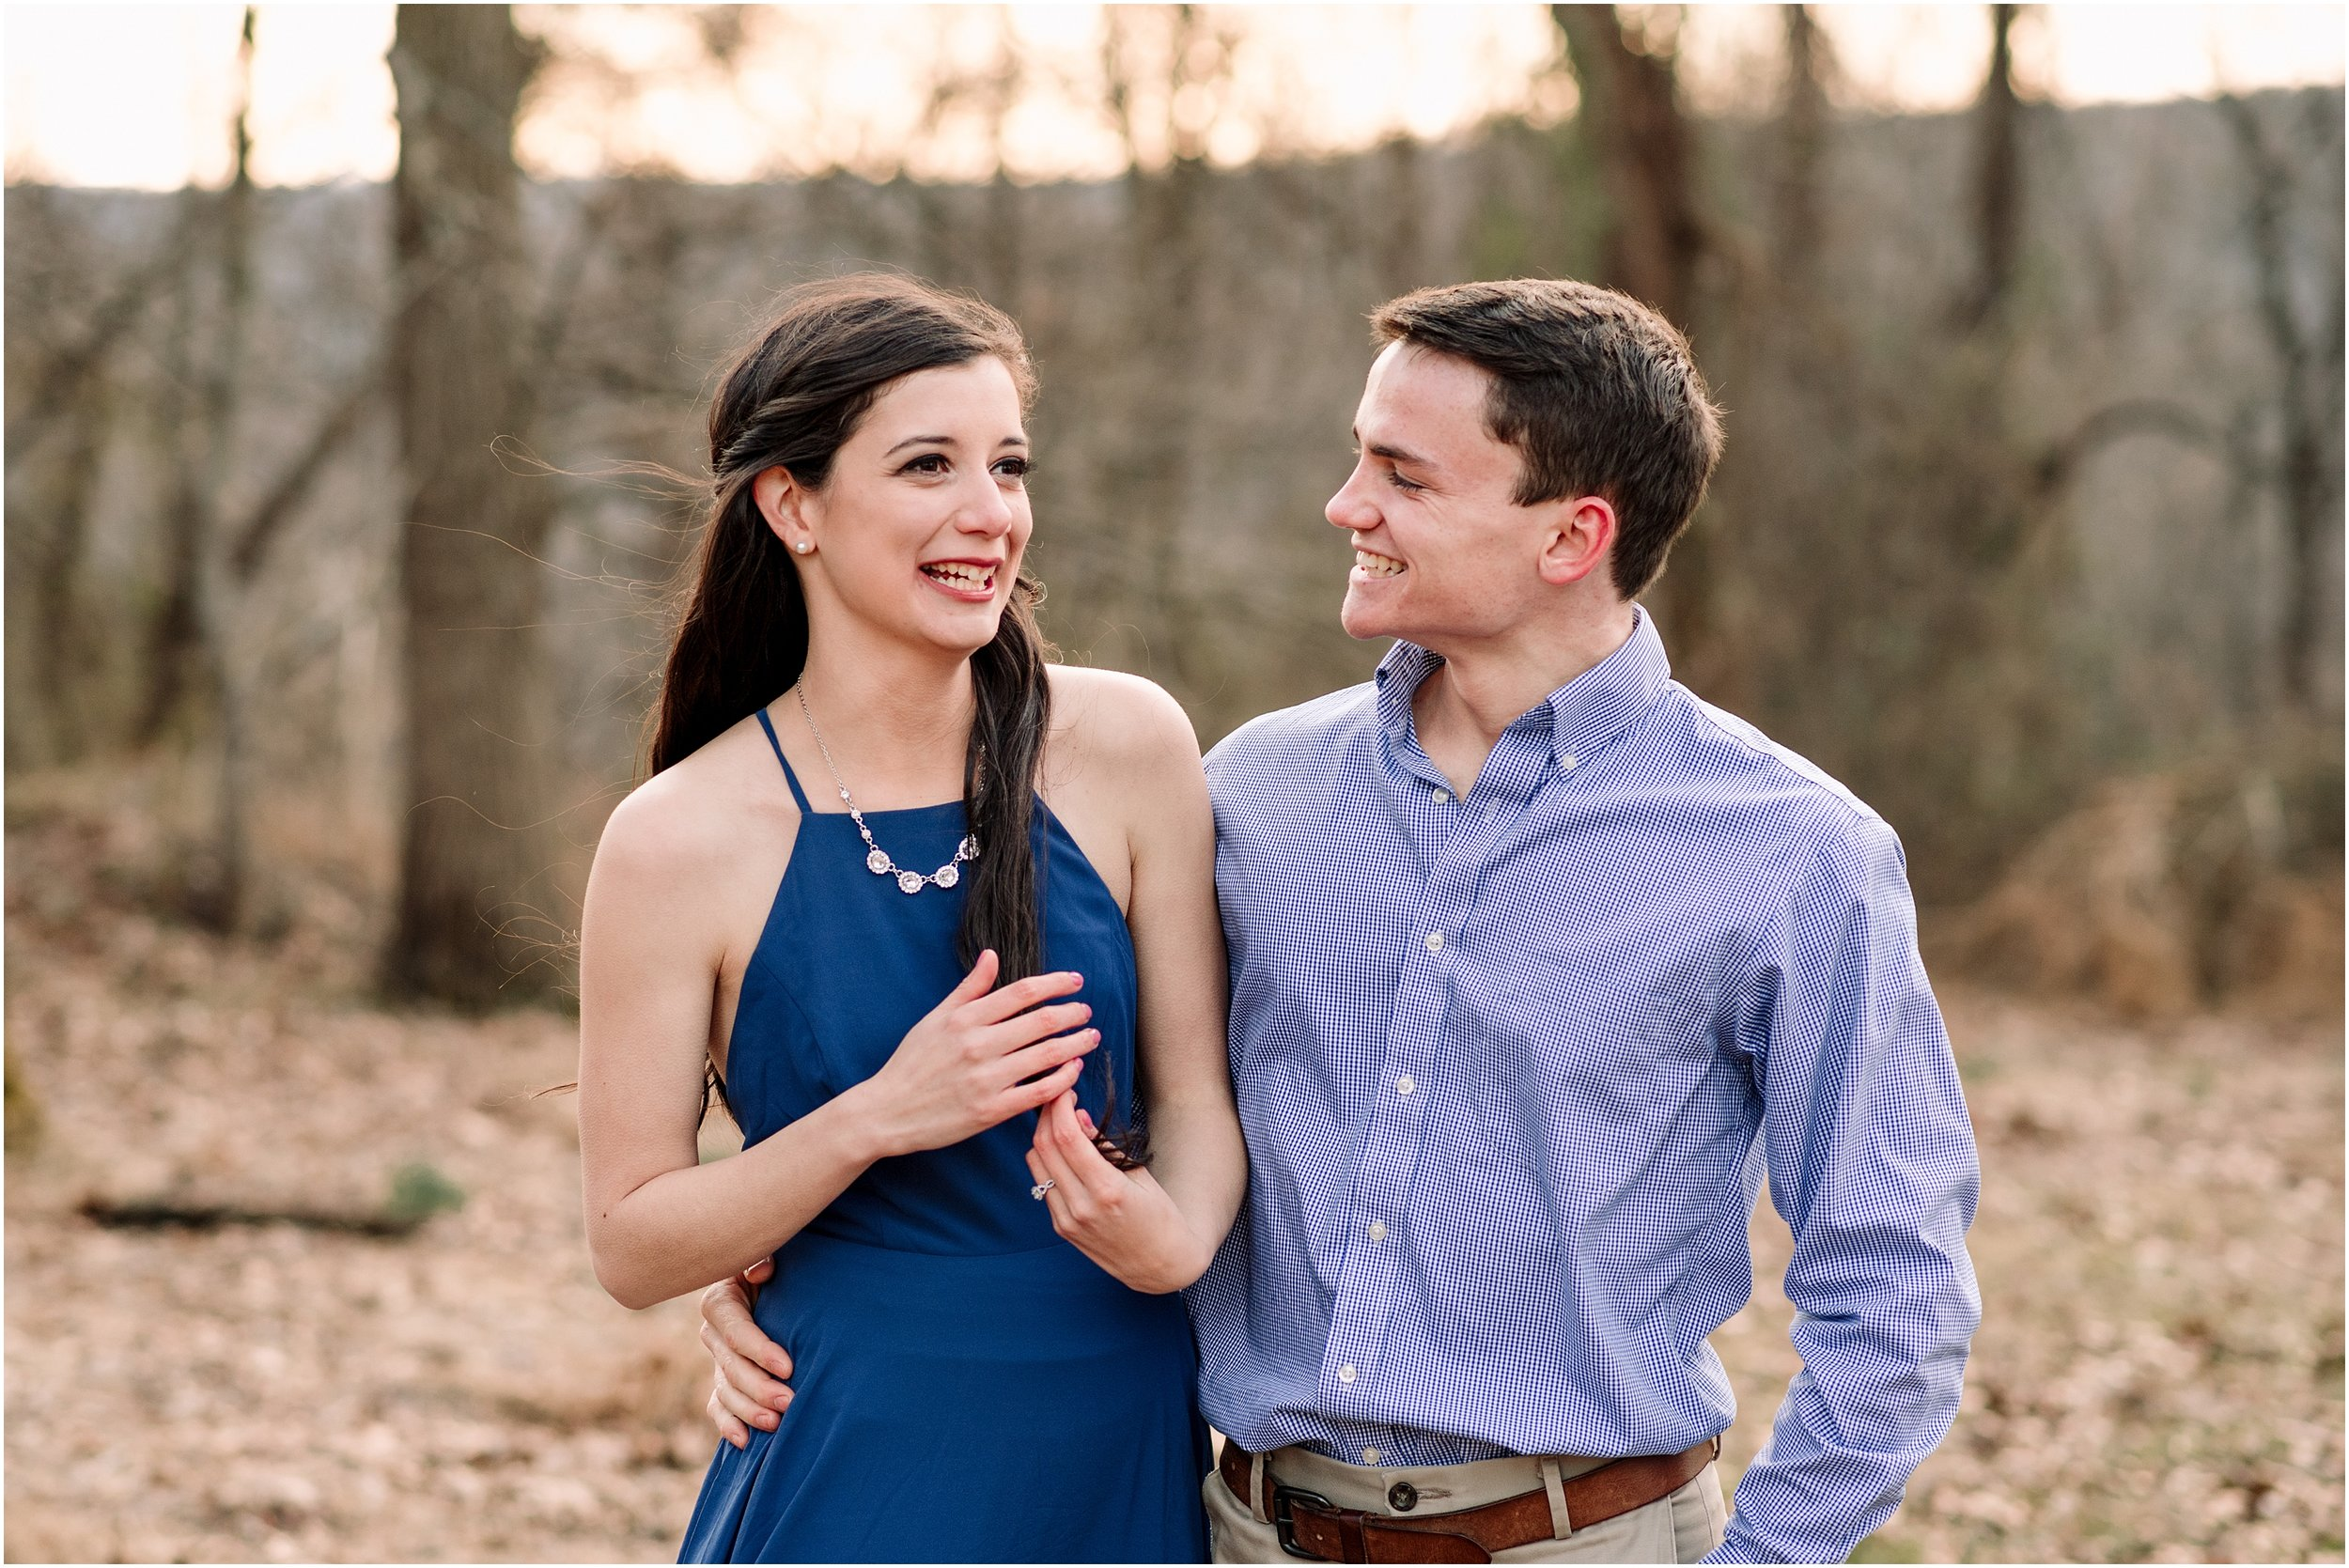 hannah leigh photography winter overlook engagement session lancaster PA_2644.jpg